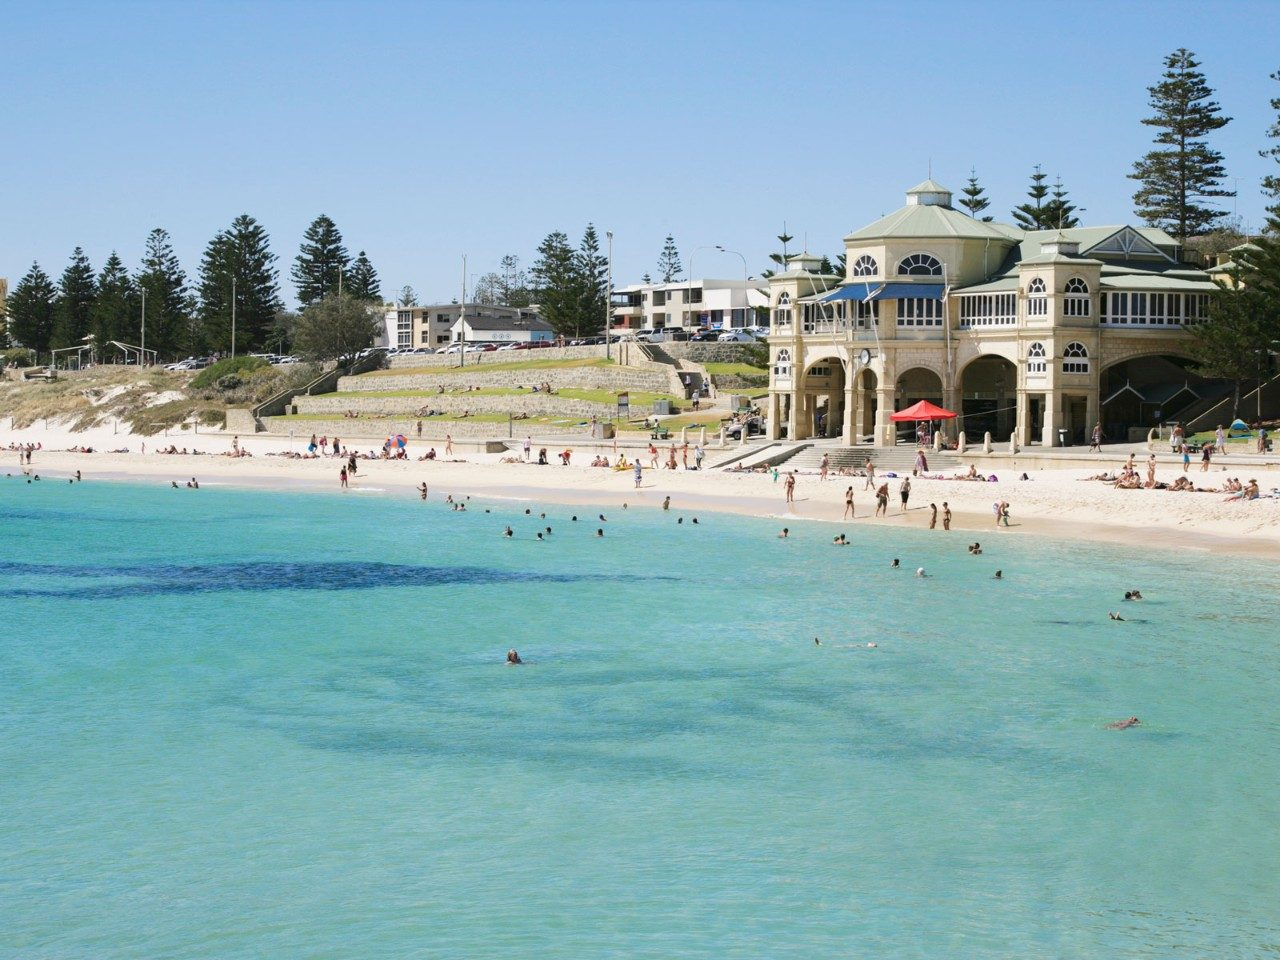 Whats On Perth Kids This Is How To Entertain Kids For Free In Perth Travel Insider